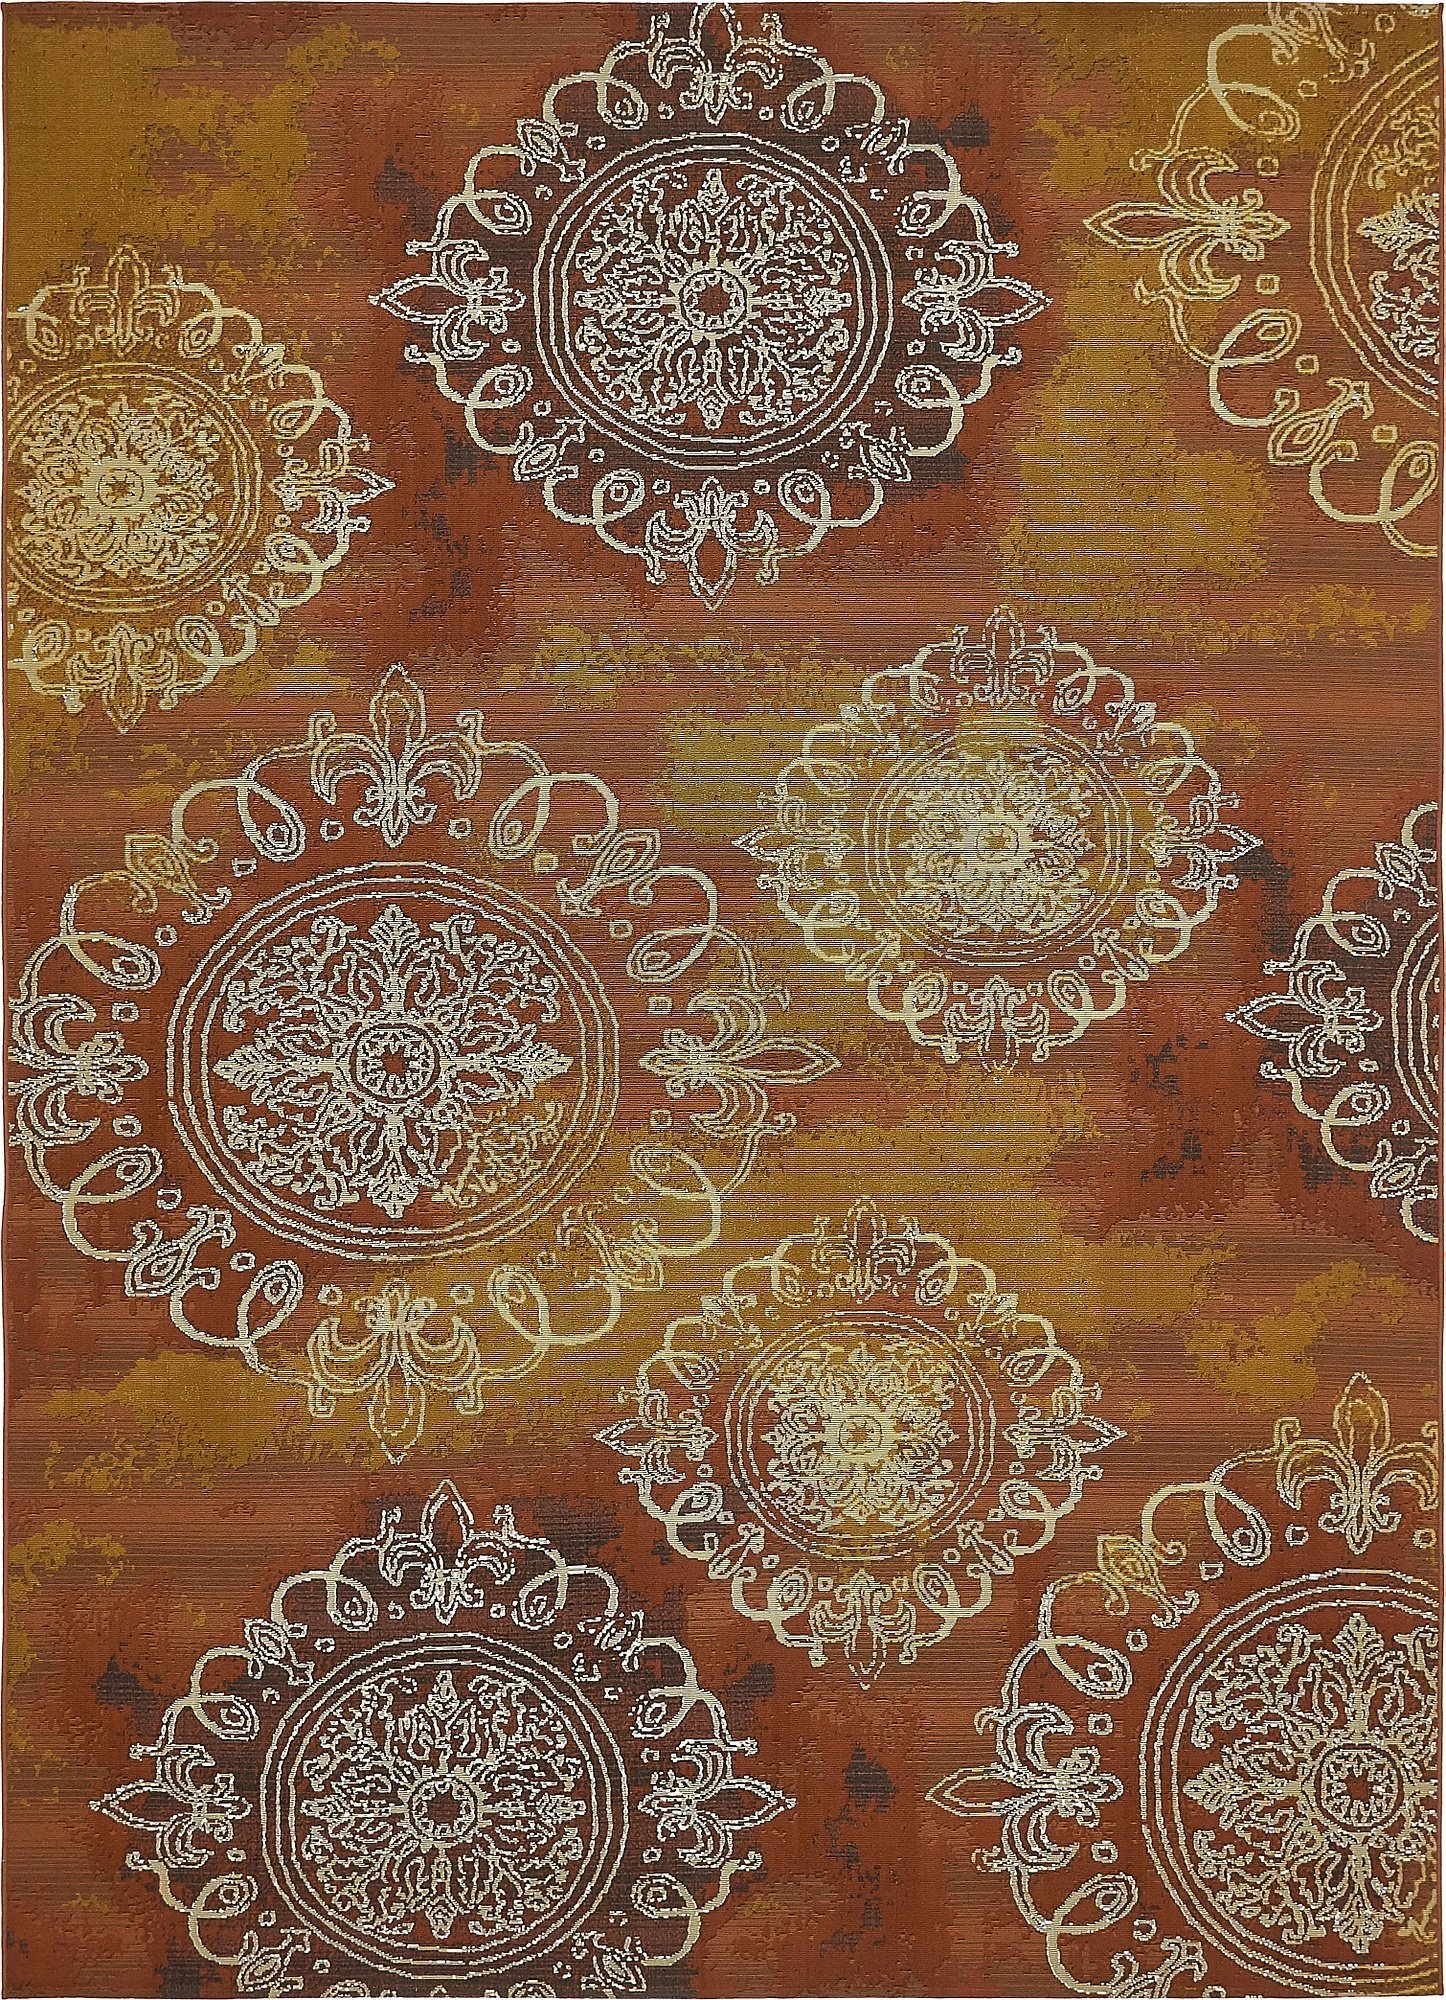 Unique Loom Eden Outdoor Collection Rust Red 8 x 11 Area Rug (8' x 11' 4'')